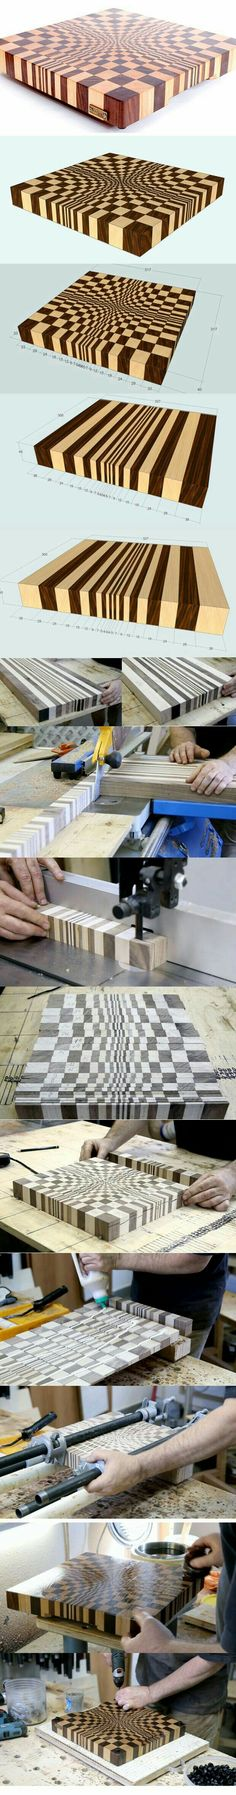 Patterns and Plans Used in Carpentry - Woodworking for Beginners Wooden Projects, Wood Crafts, Diy And Crafts, Diy Projects, End Grain Cutting Board, Wood Cutting Boards, Chopping Boards, Wood Working For Beginners, Wood Turning